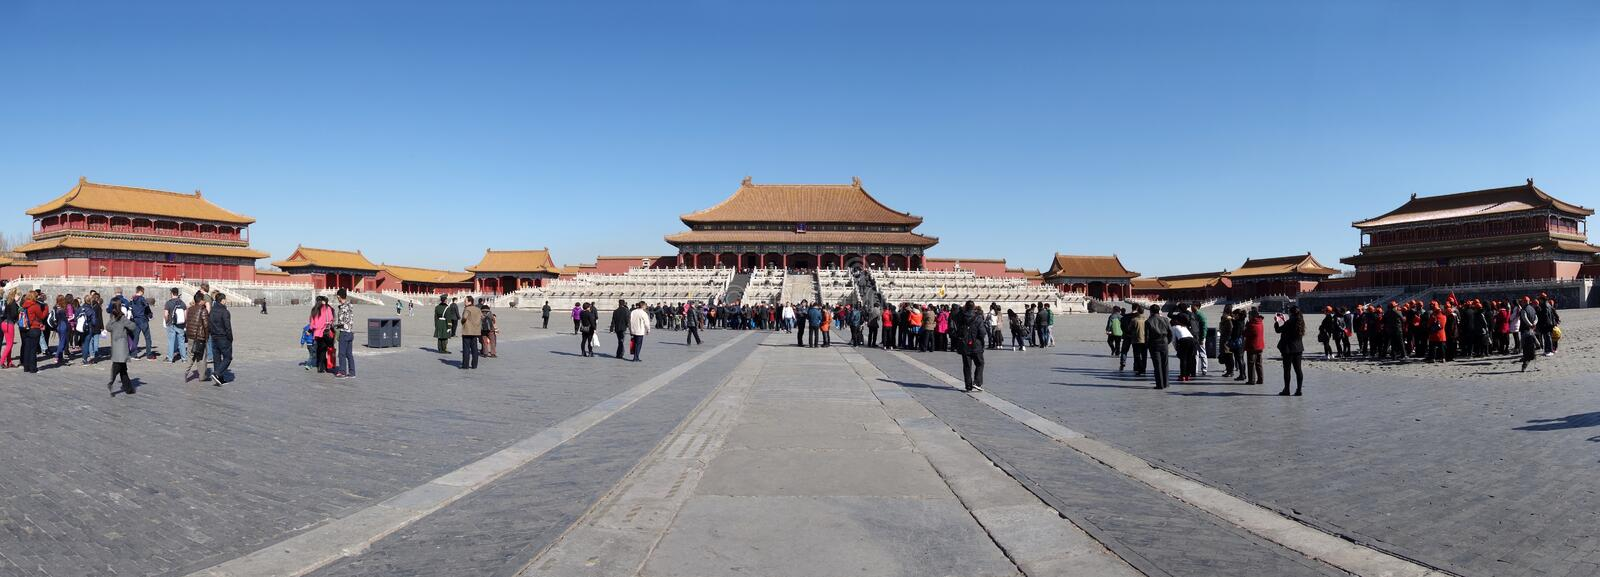 Taihedian,The Forbidden City (Gu Gong) royalty free stock images